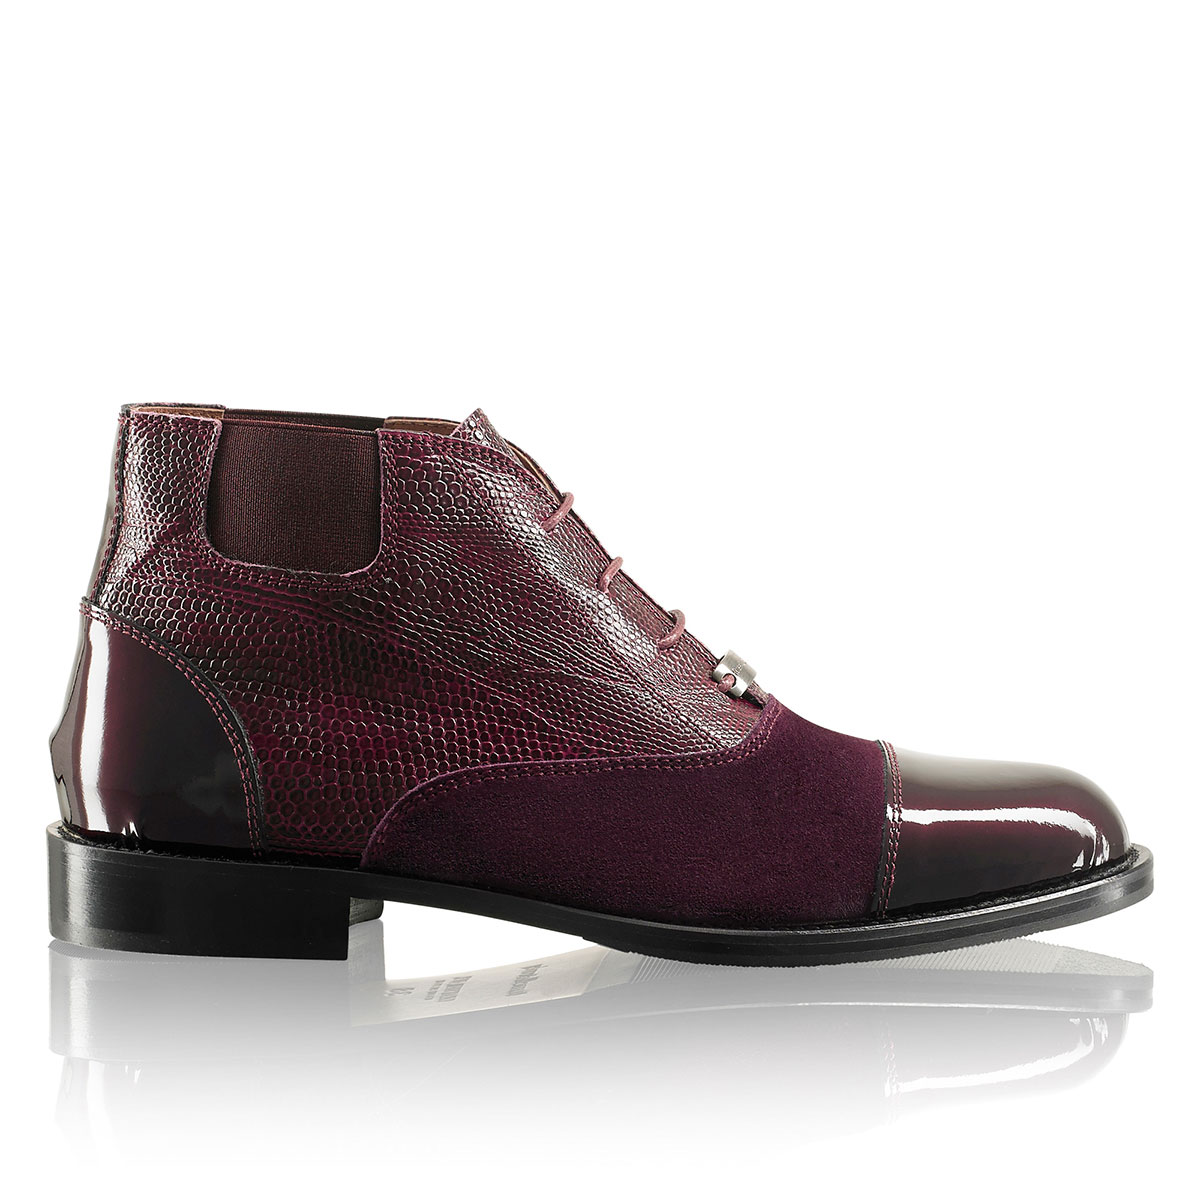 russell bromley shoes sale